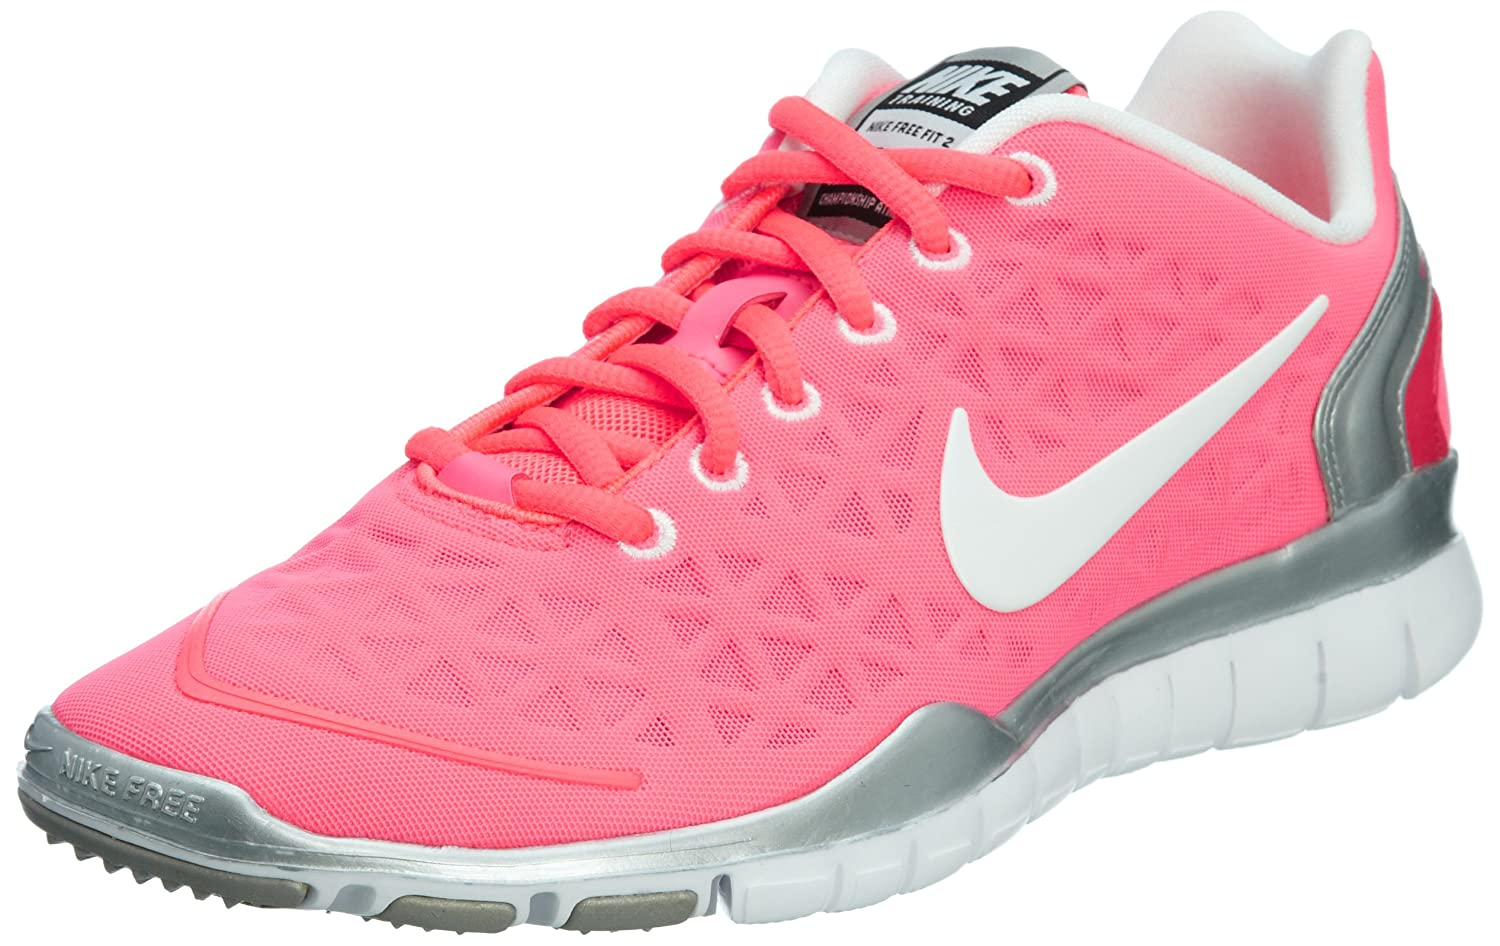 info for 9abec c199d Amazon.com   NIKE Wmns Free TR Fit 2 Hot Punch Silver Womens Training Shoes  487789-601  US size 9.5    Shoes